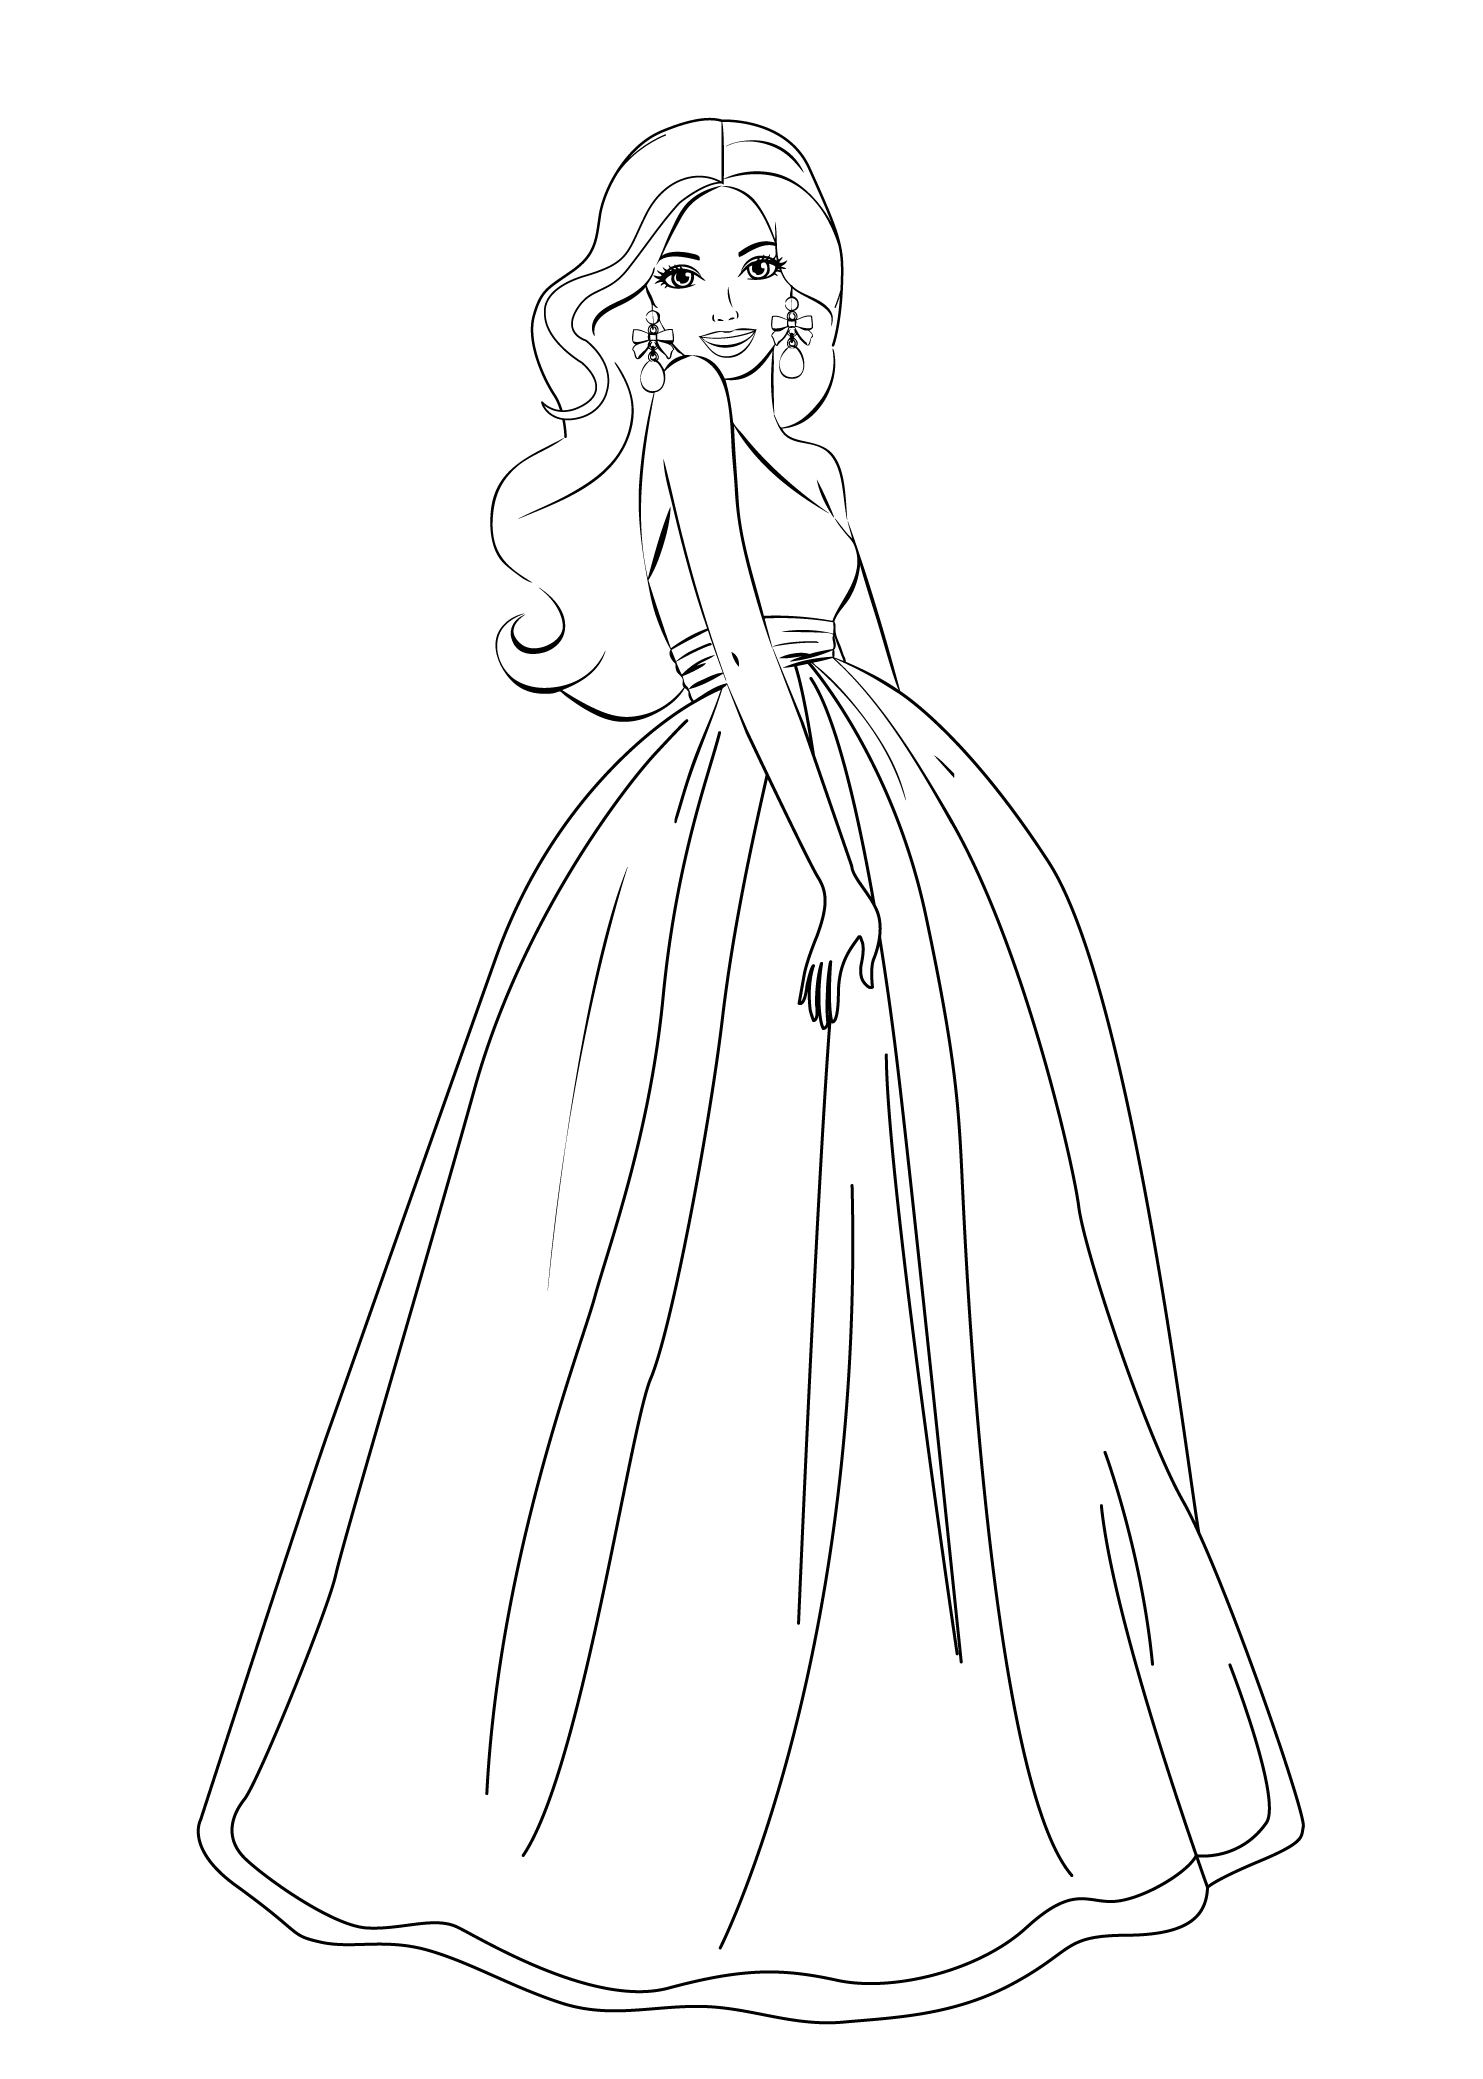 elegant dressed barbie coloring page - Barbie Princess Coloring Pages